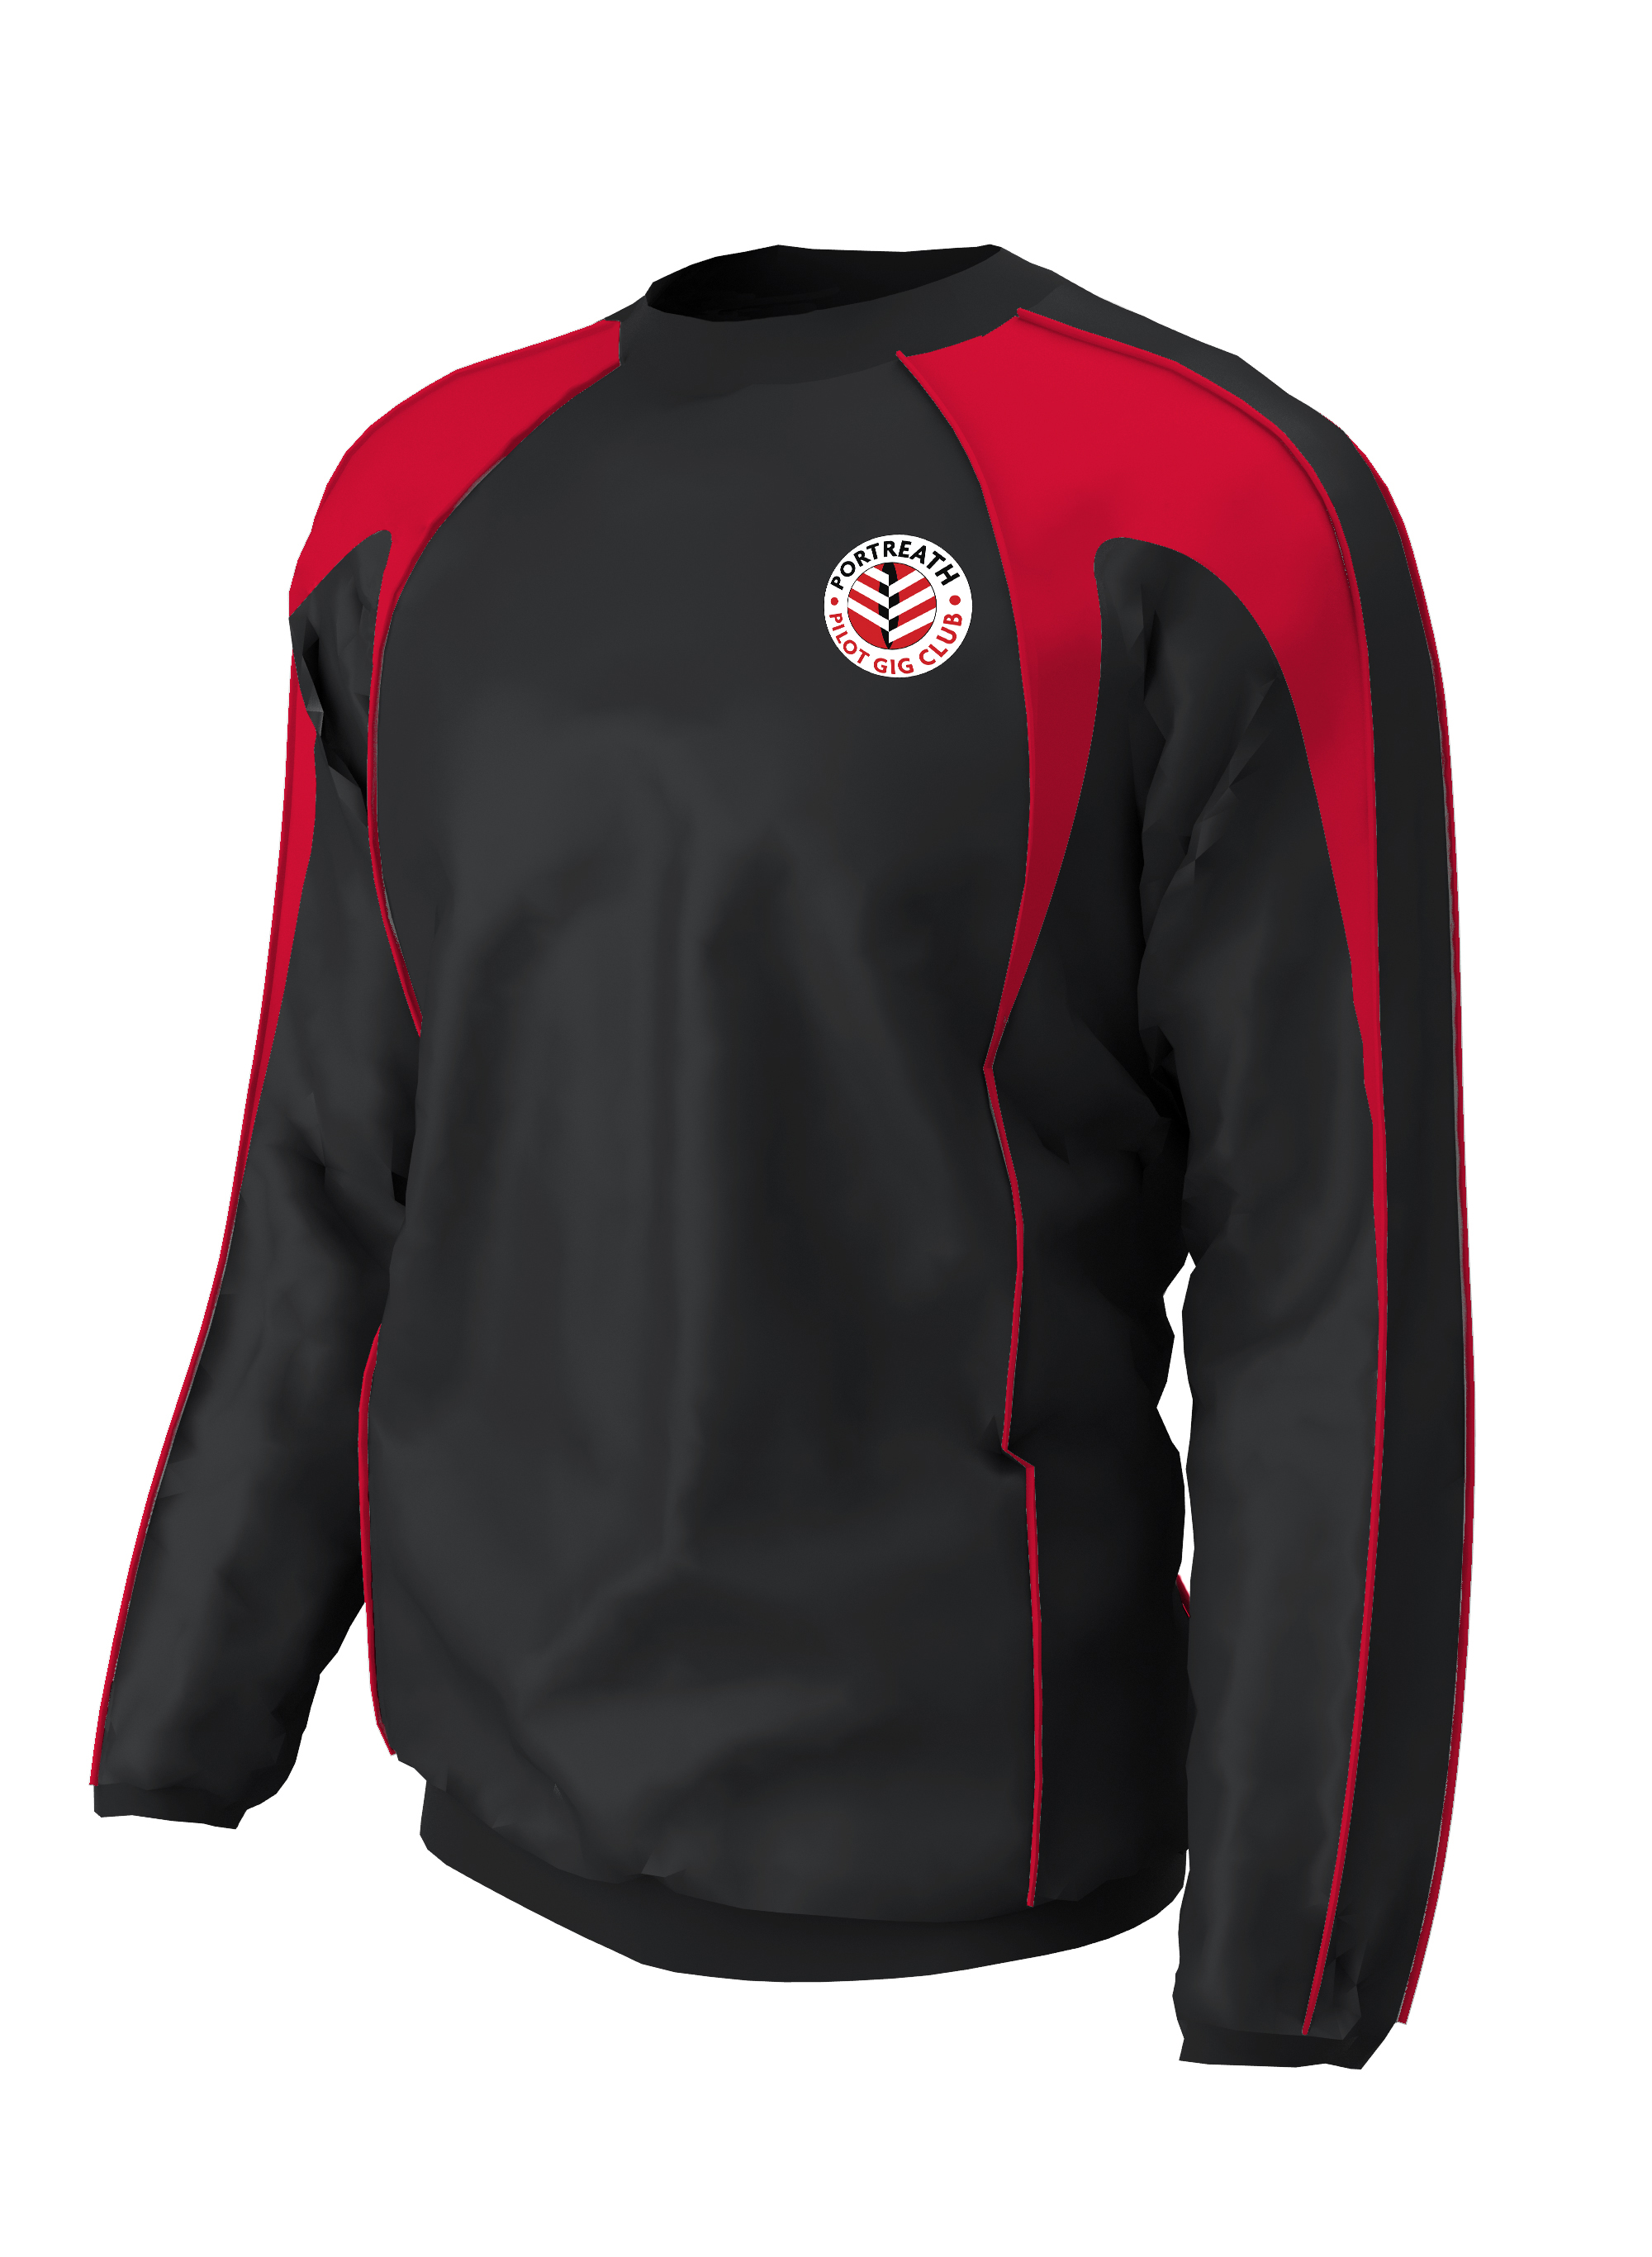 Portreath Gig Club Training Jacket